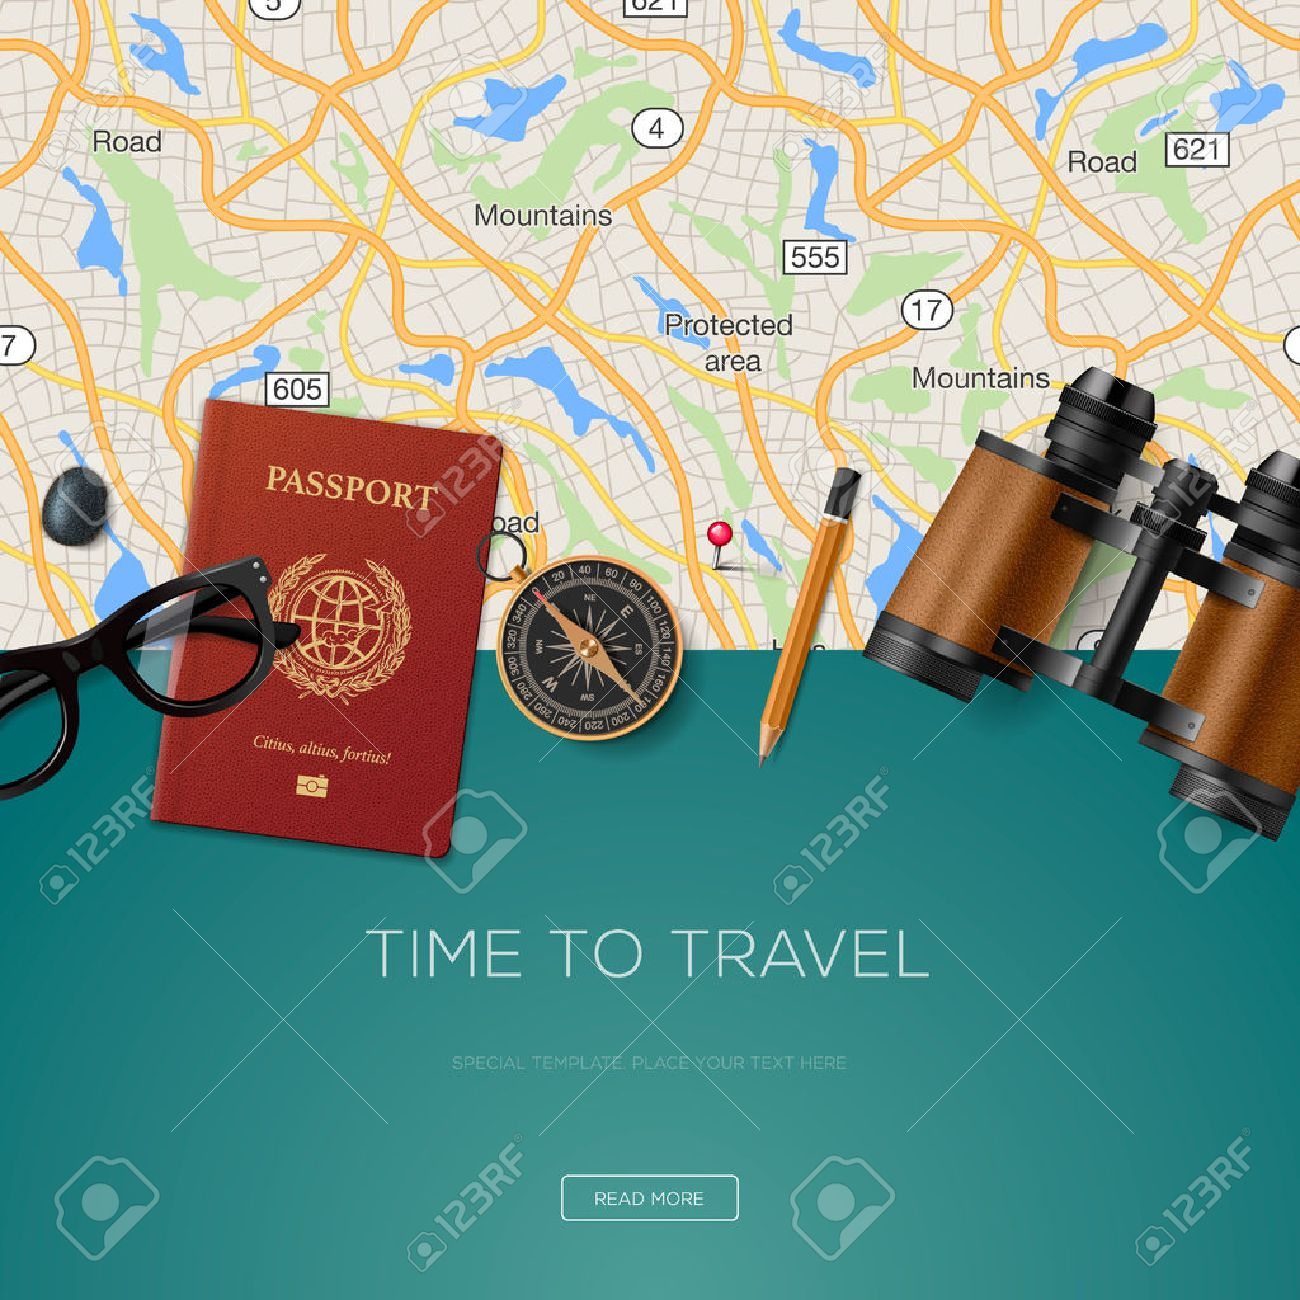 Travel and adventure template, time to travel, for tourism website, illustration. - 50067483